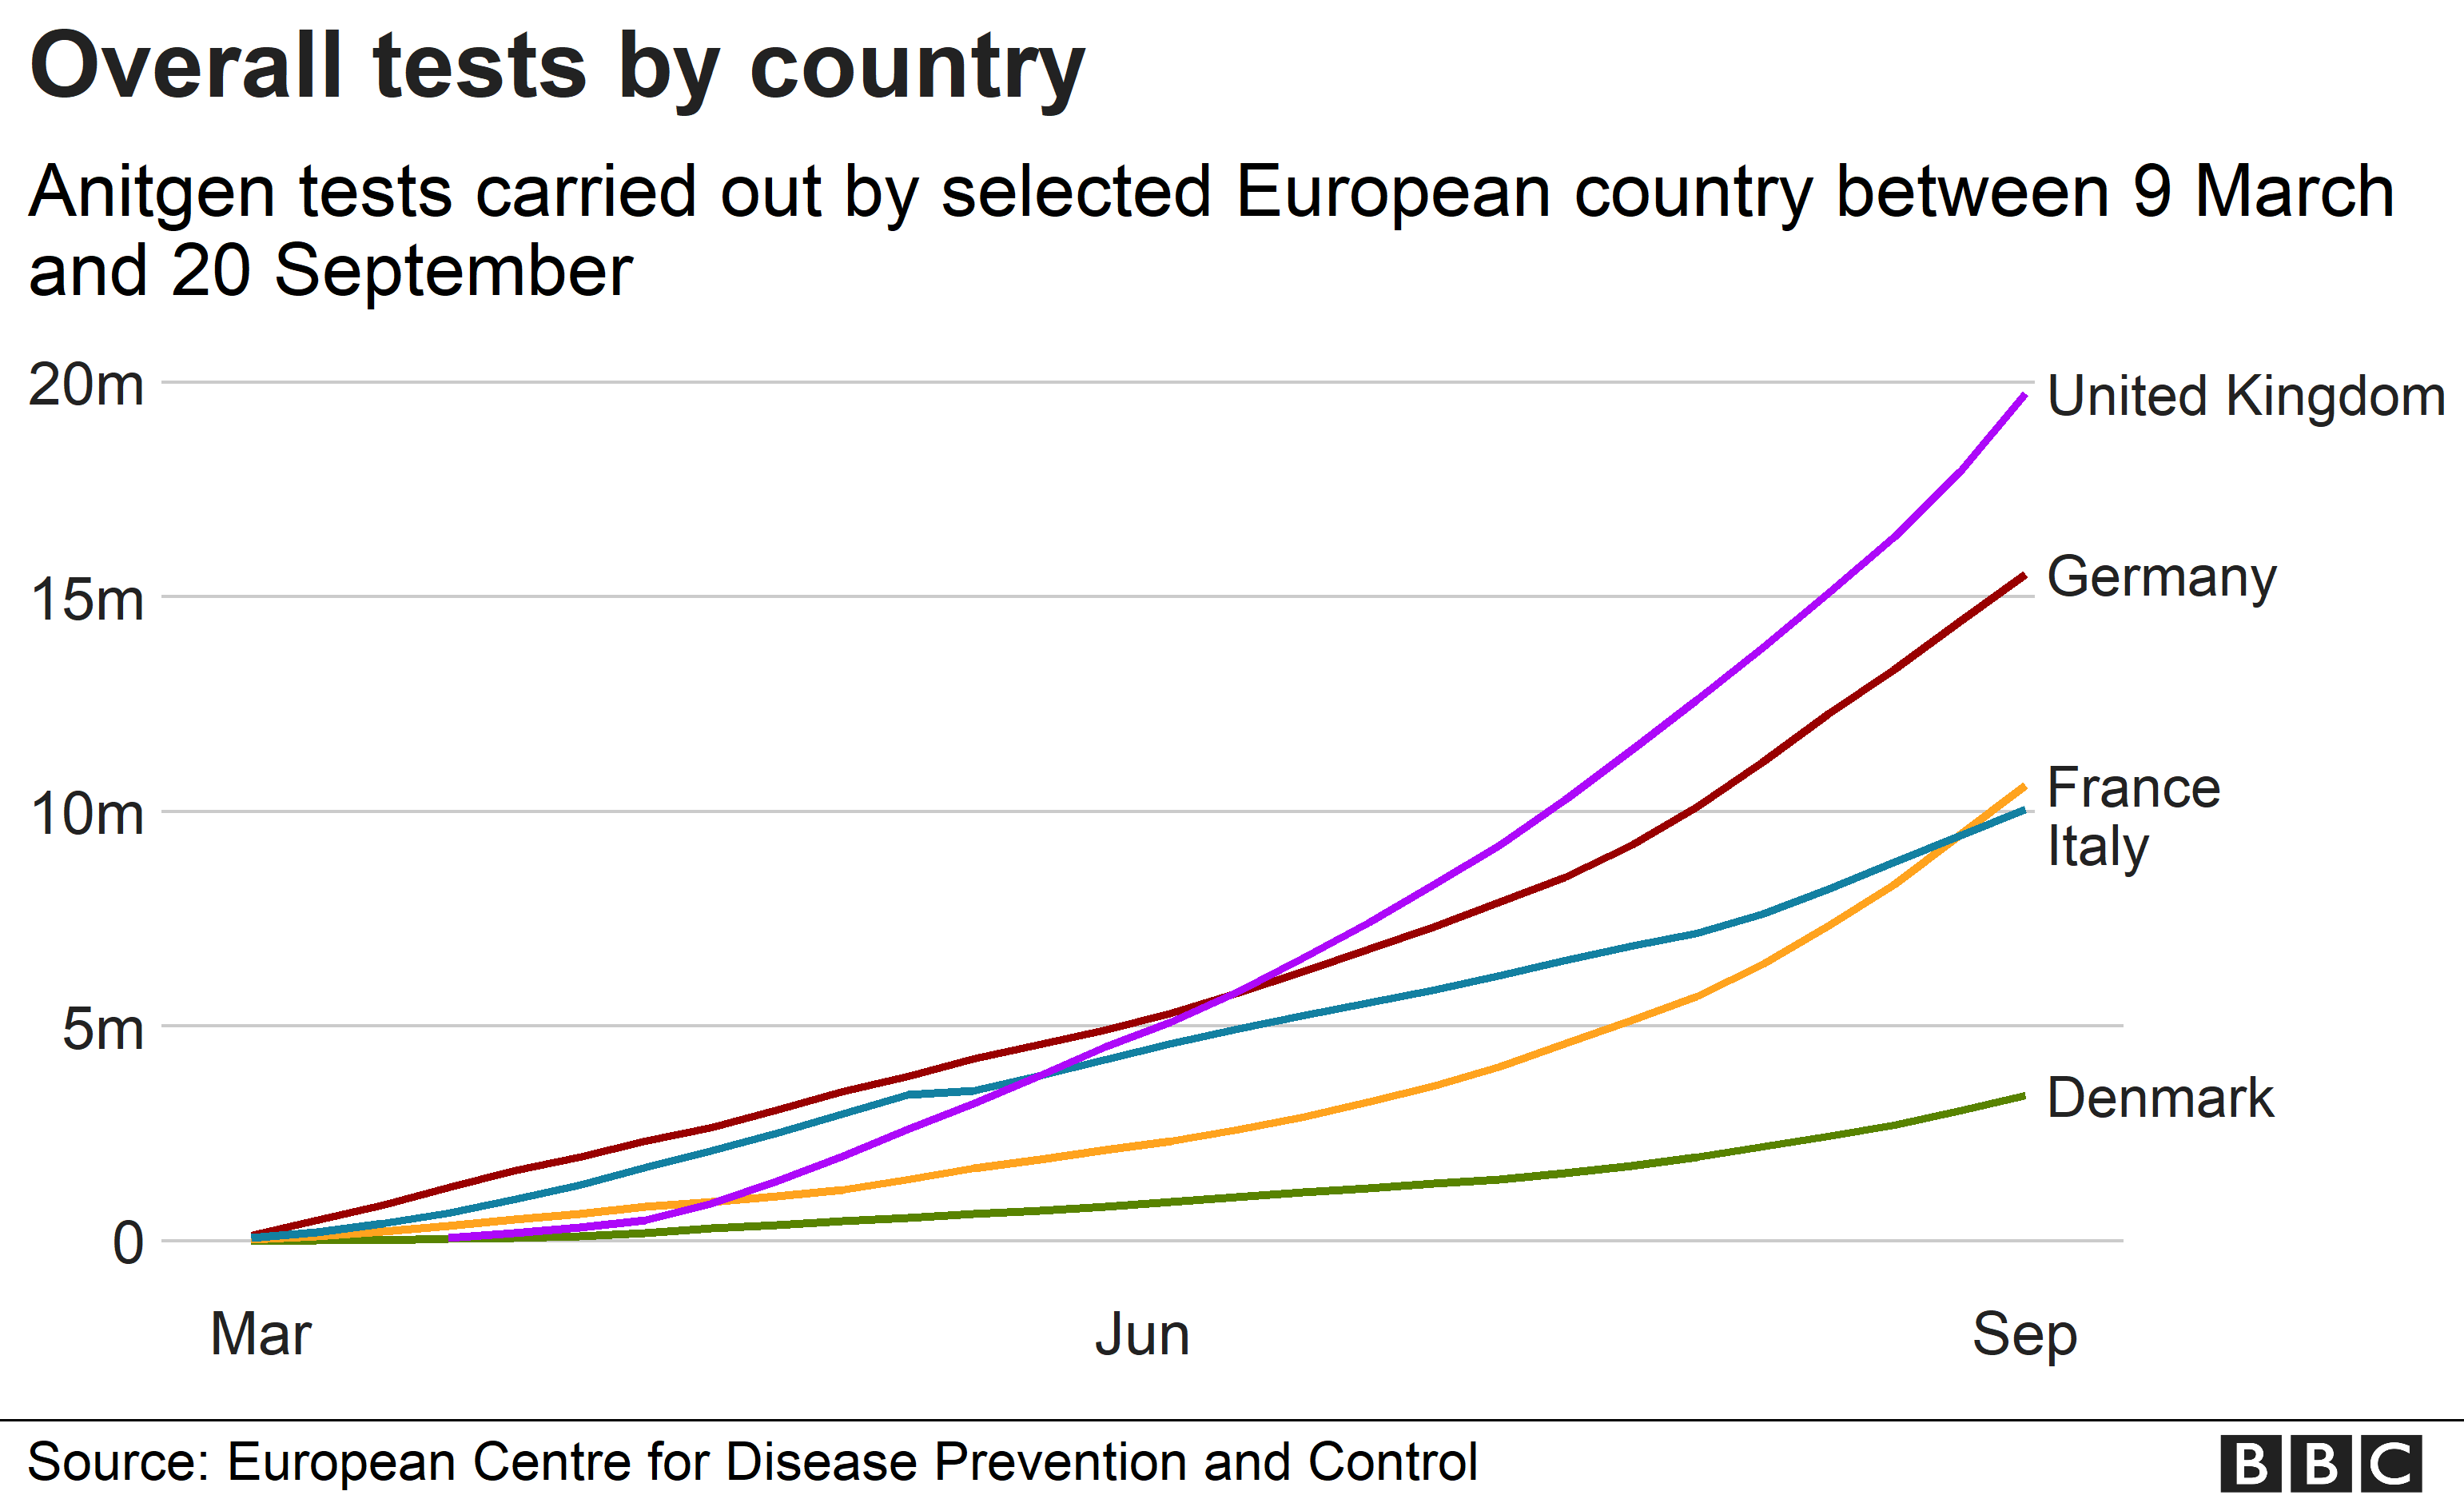 Chart showing overall tests by country